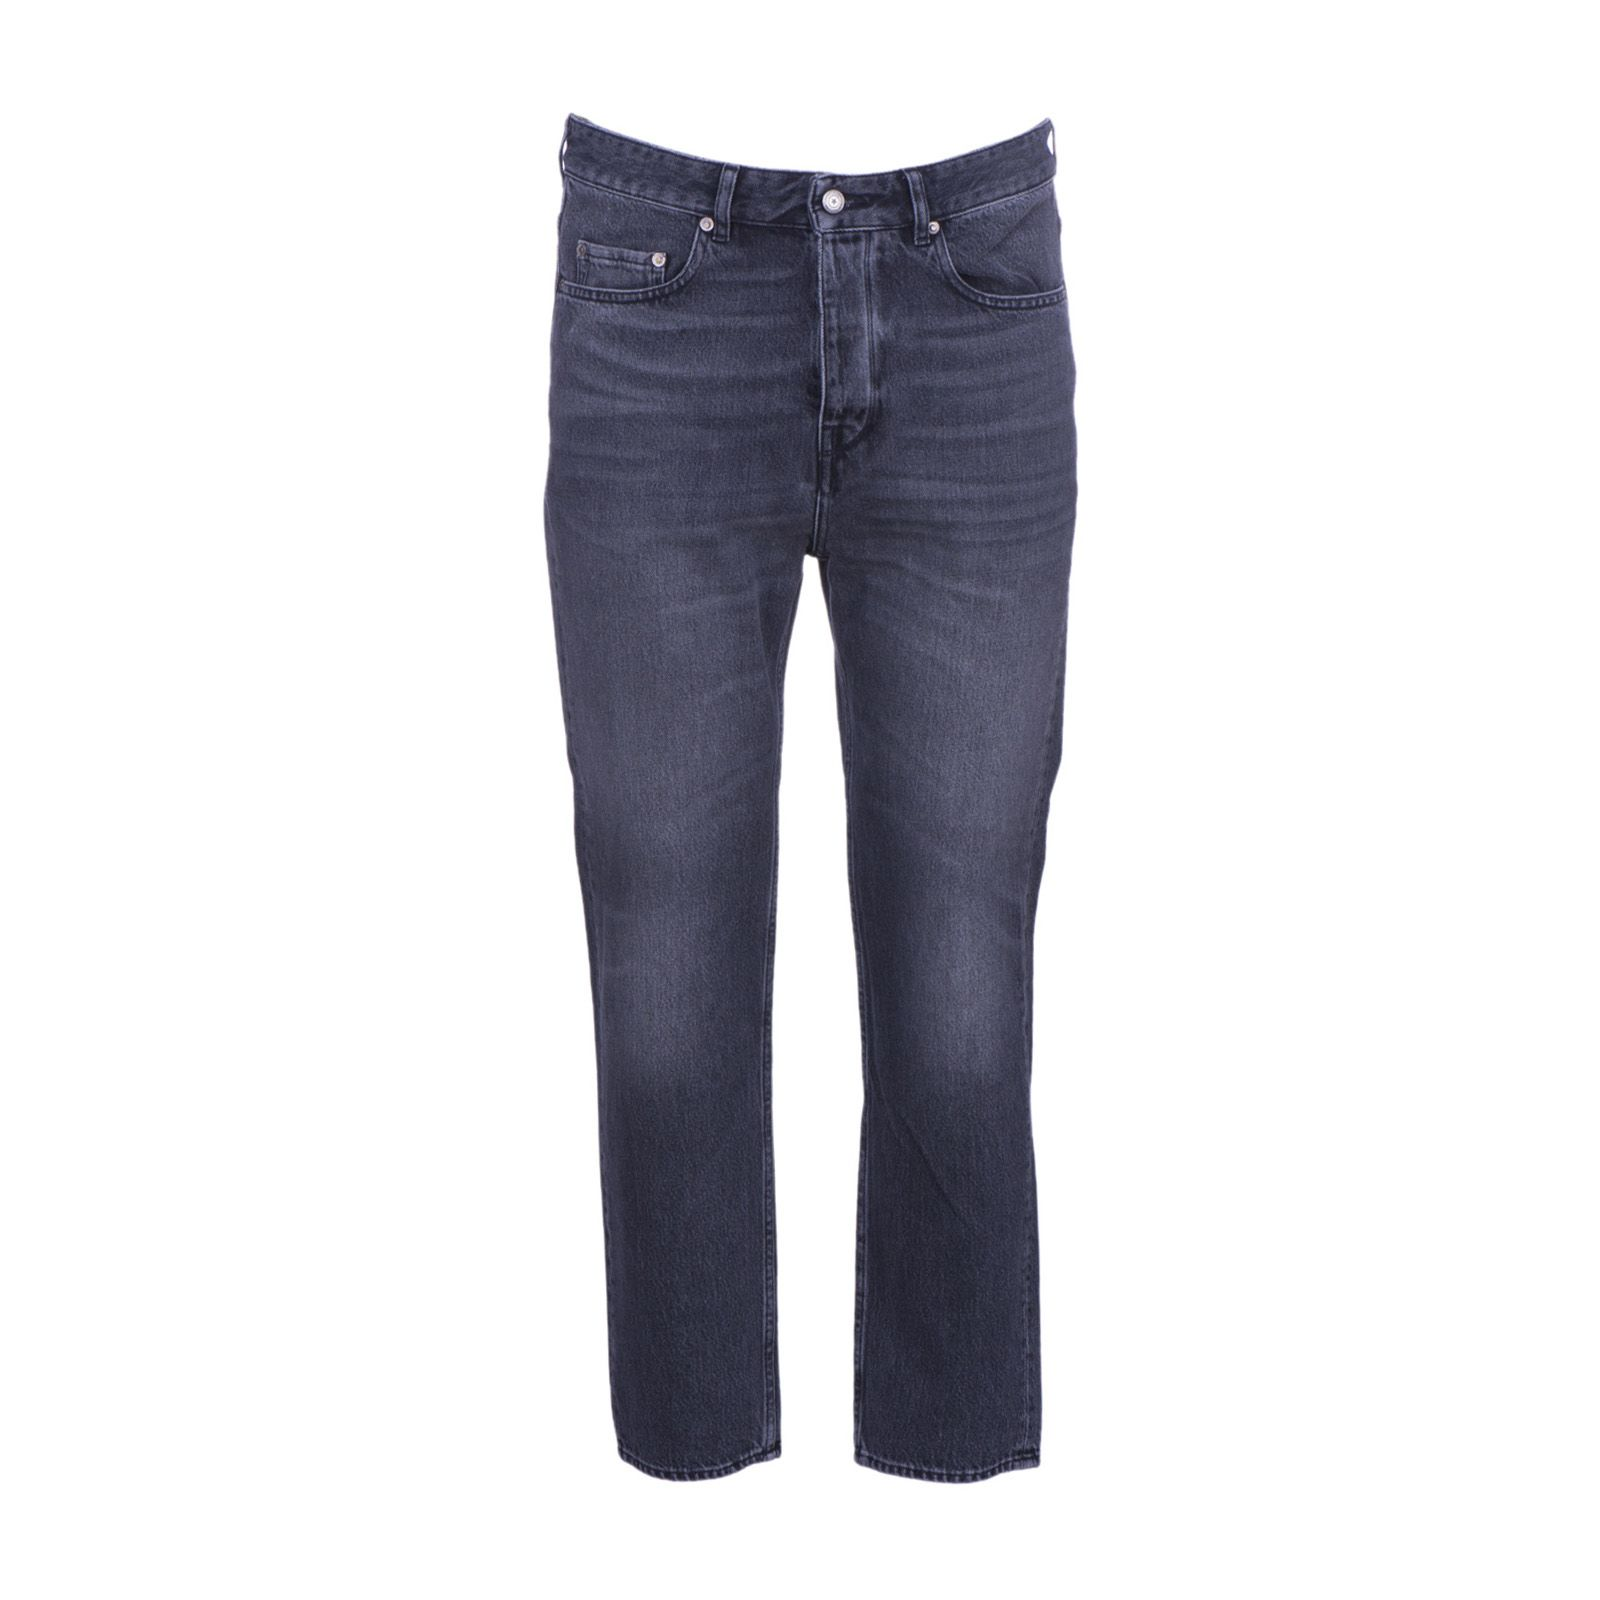 Golden Goose Deluxe Brand Classic Fitted Jeans